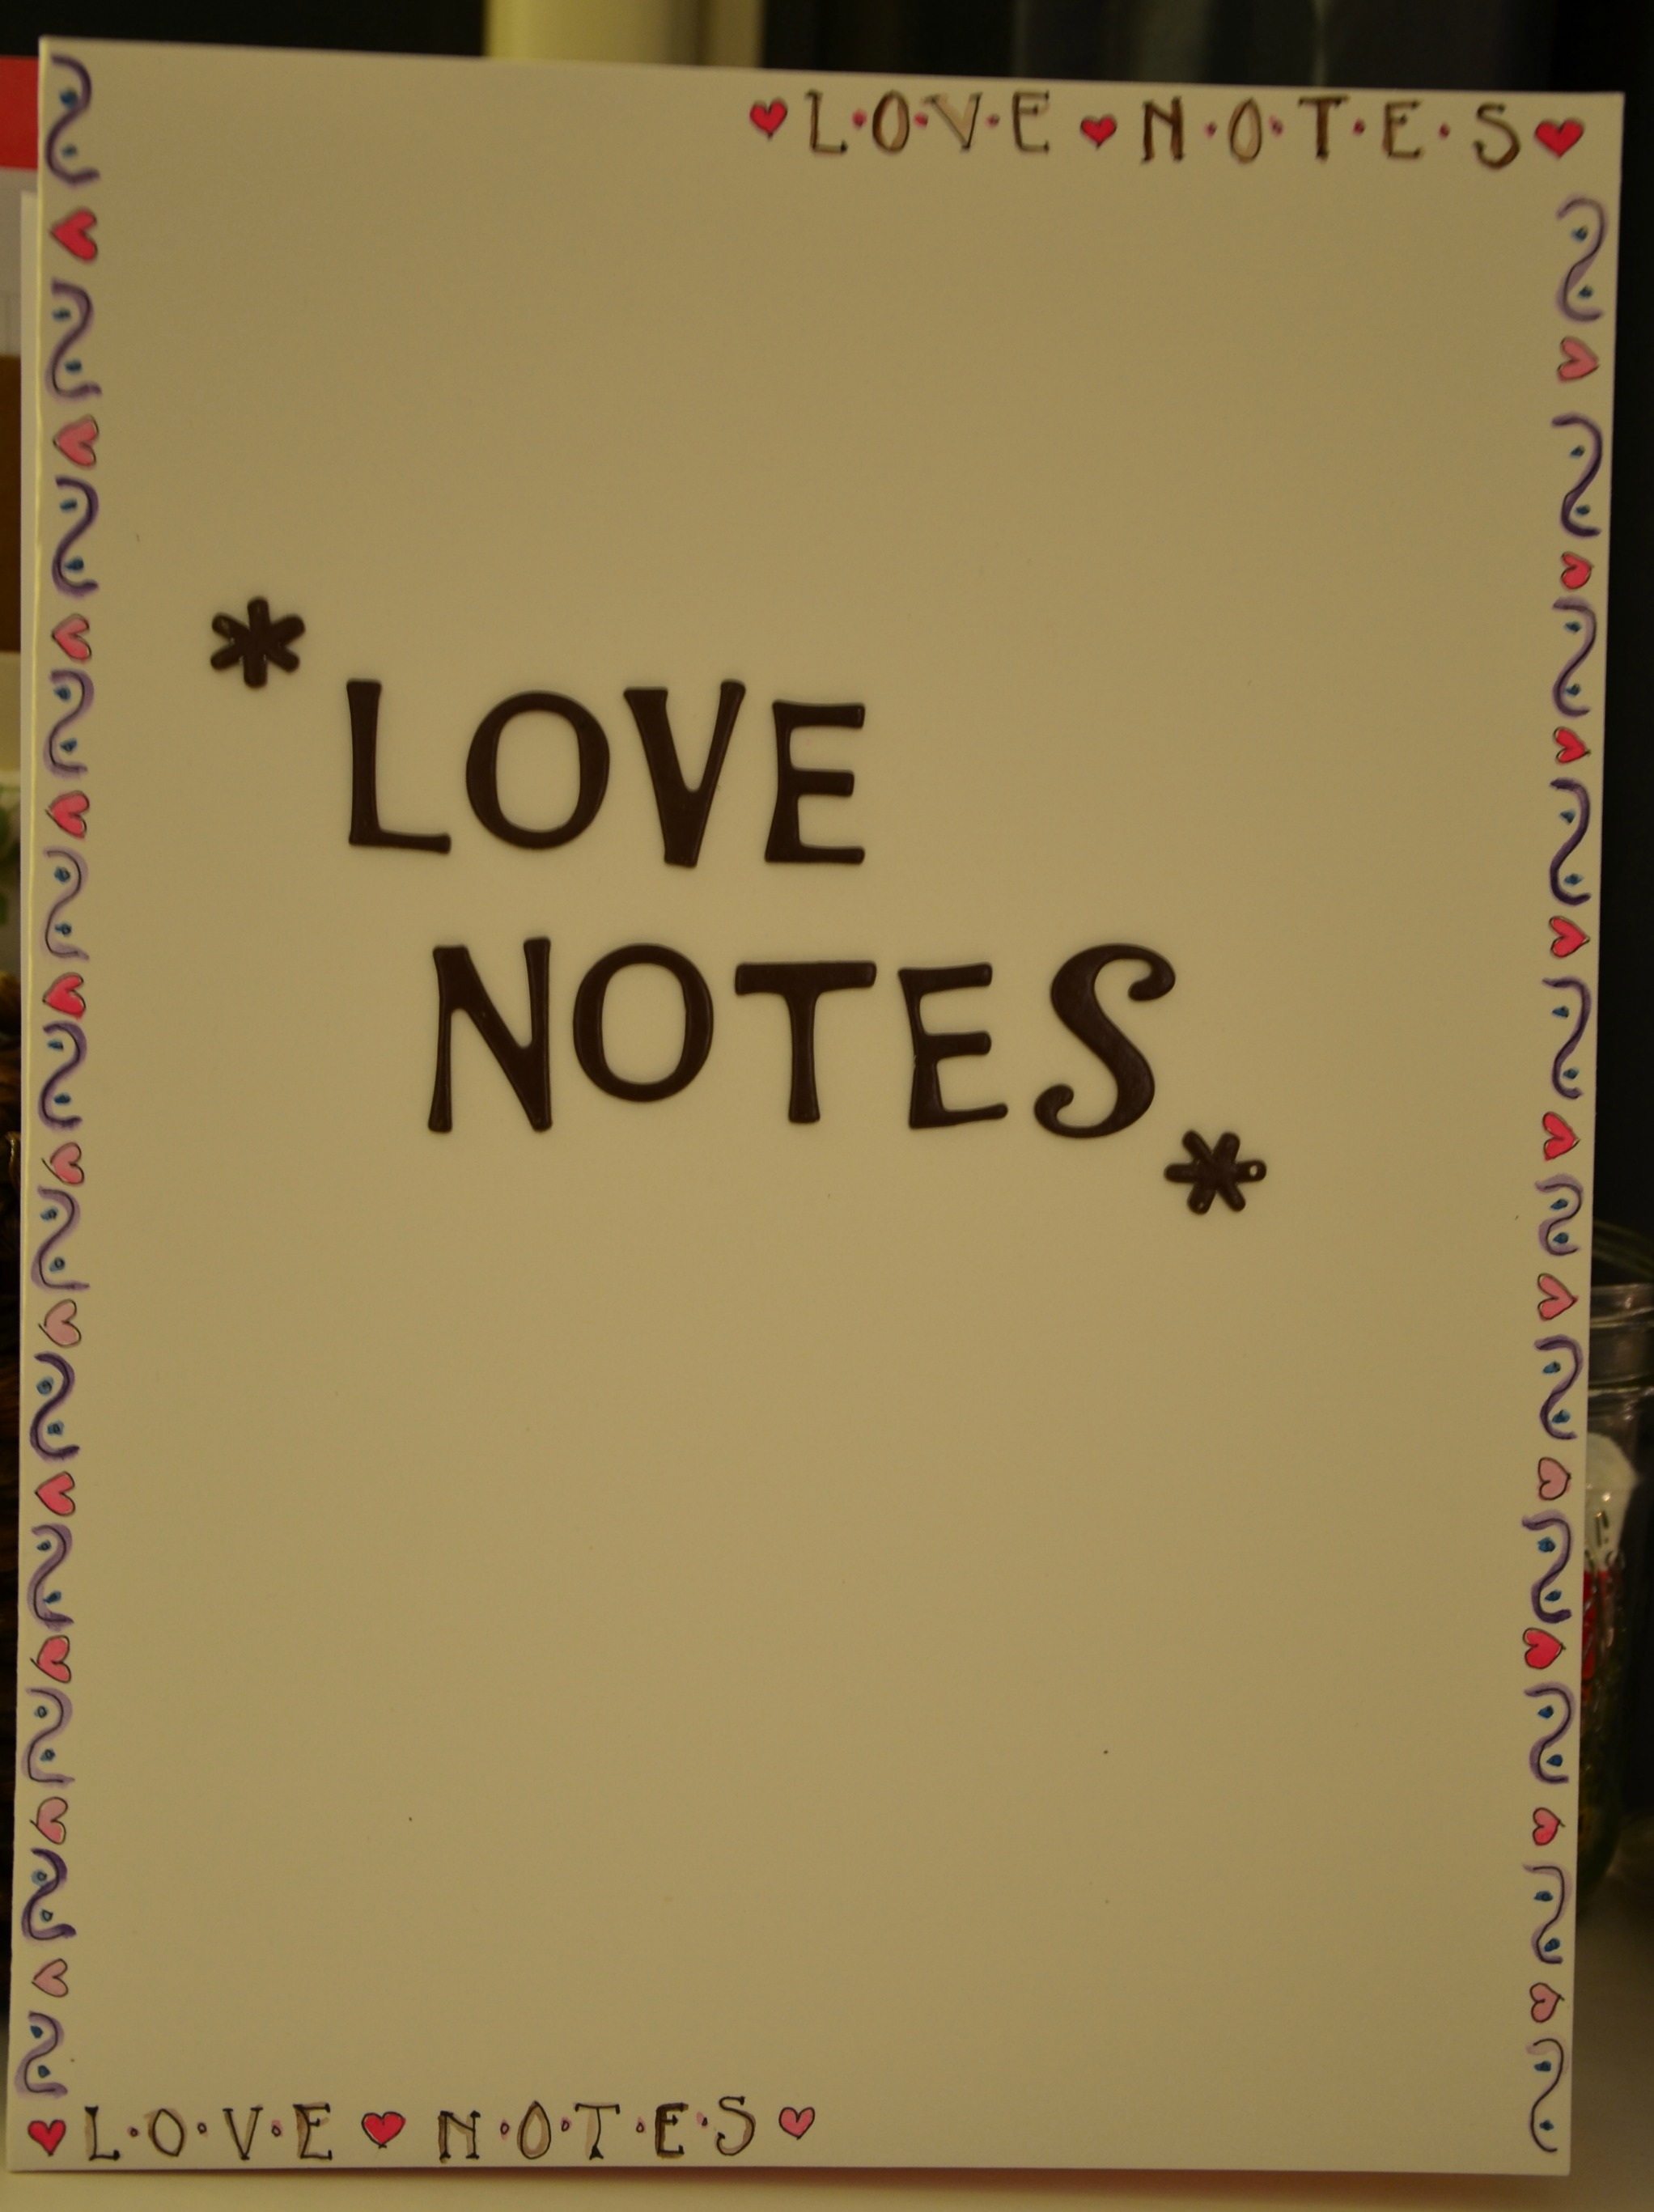 Love Notes cover.jpg